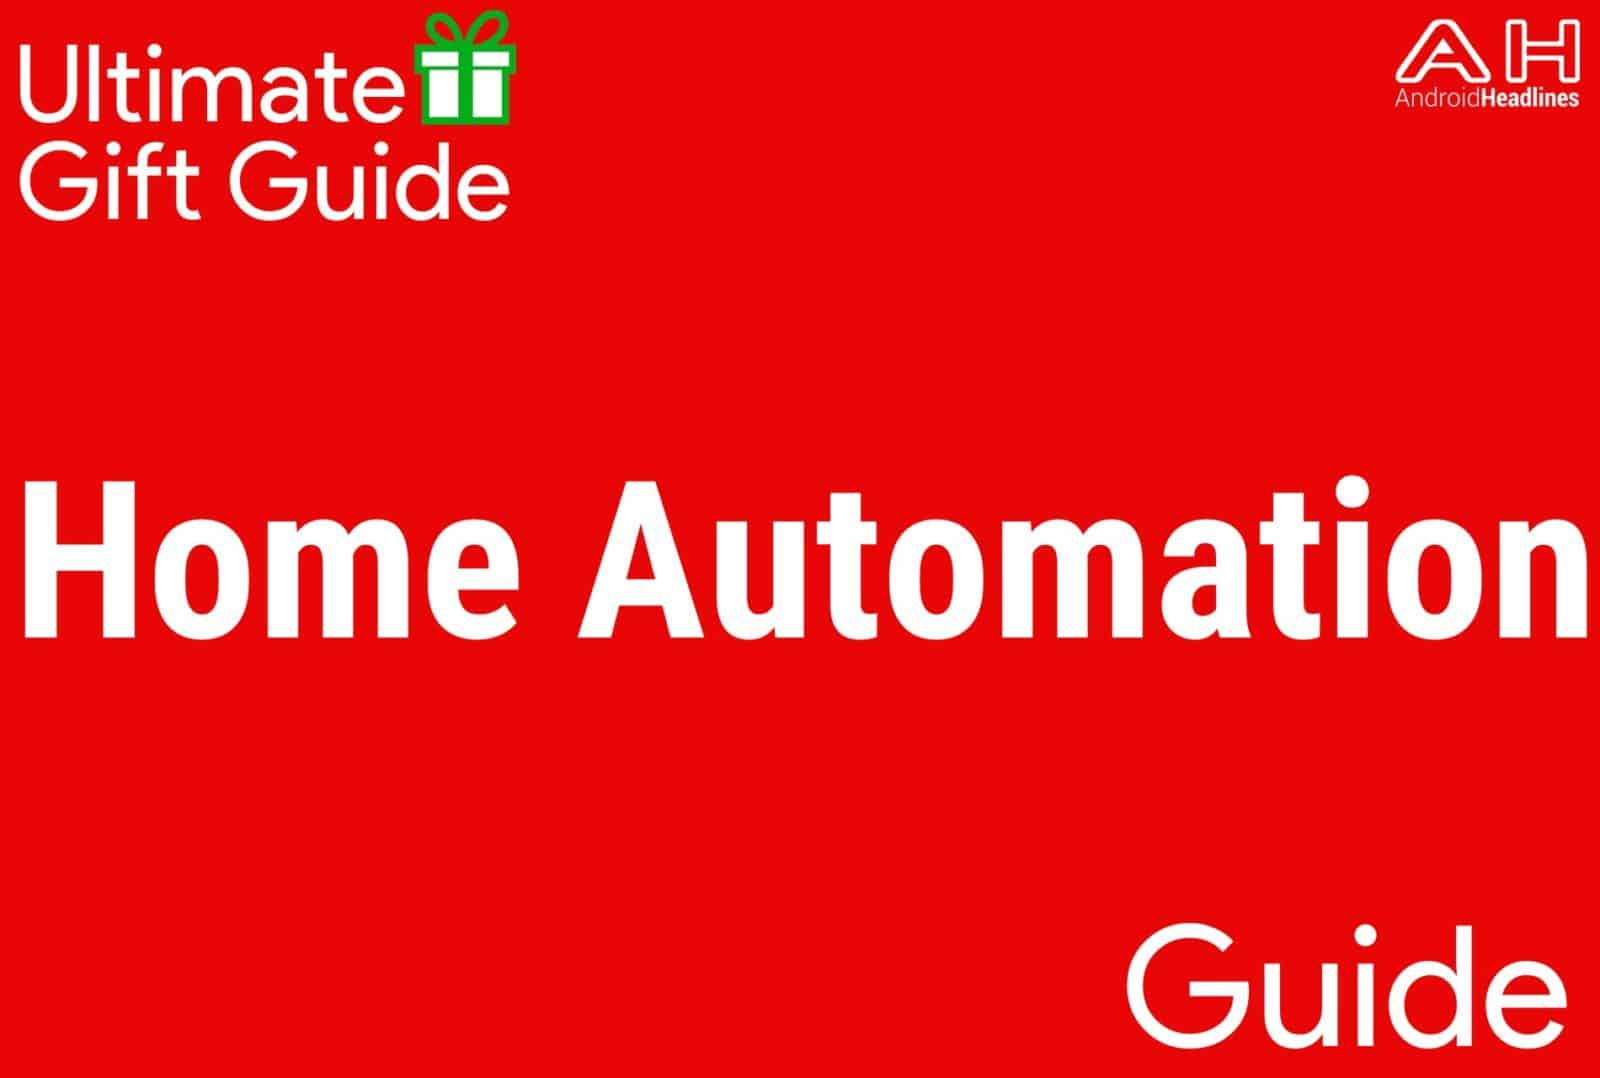 Top Home Automation holiday gift guide 2016 - 2017: top 10 best home automation